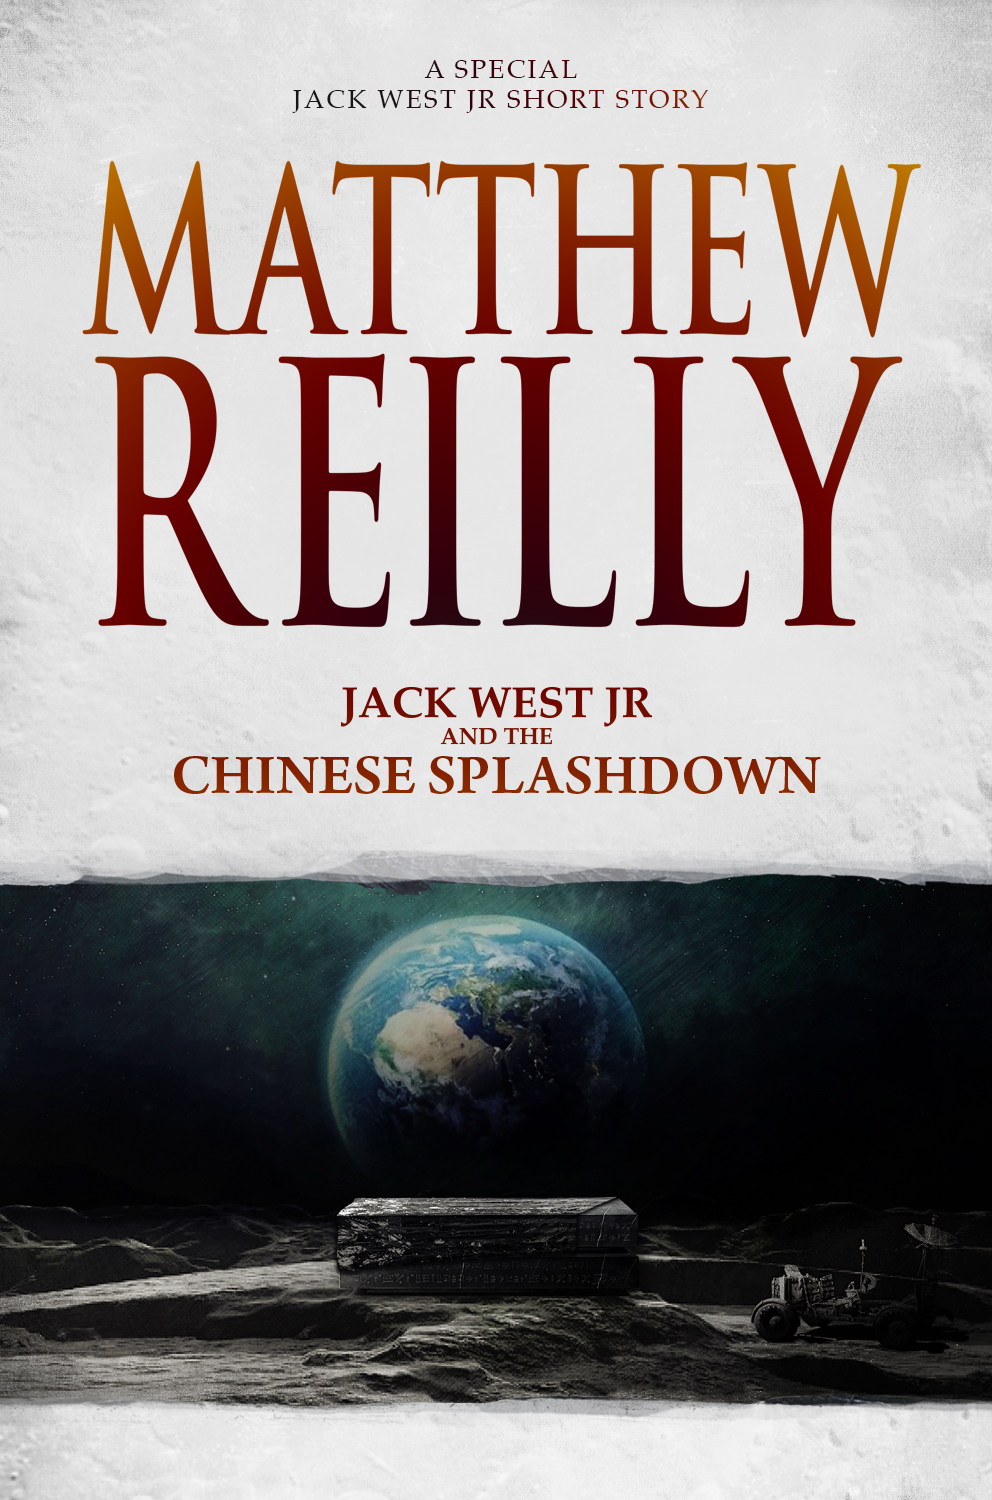 Jack West Jr and the Chinese Splashdown